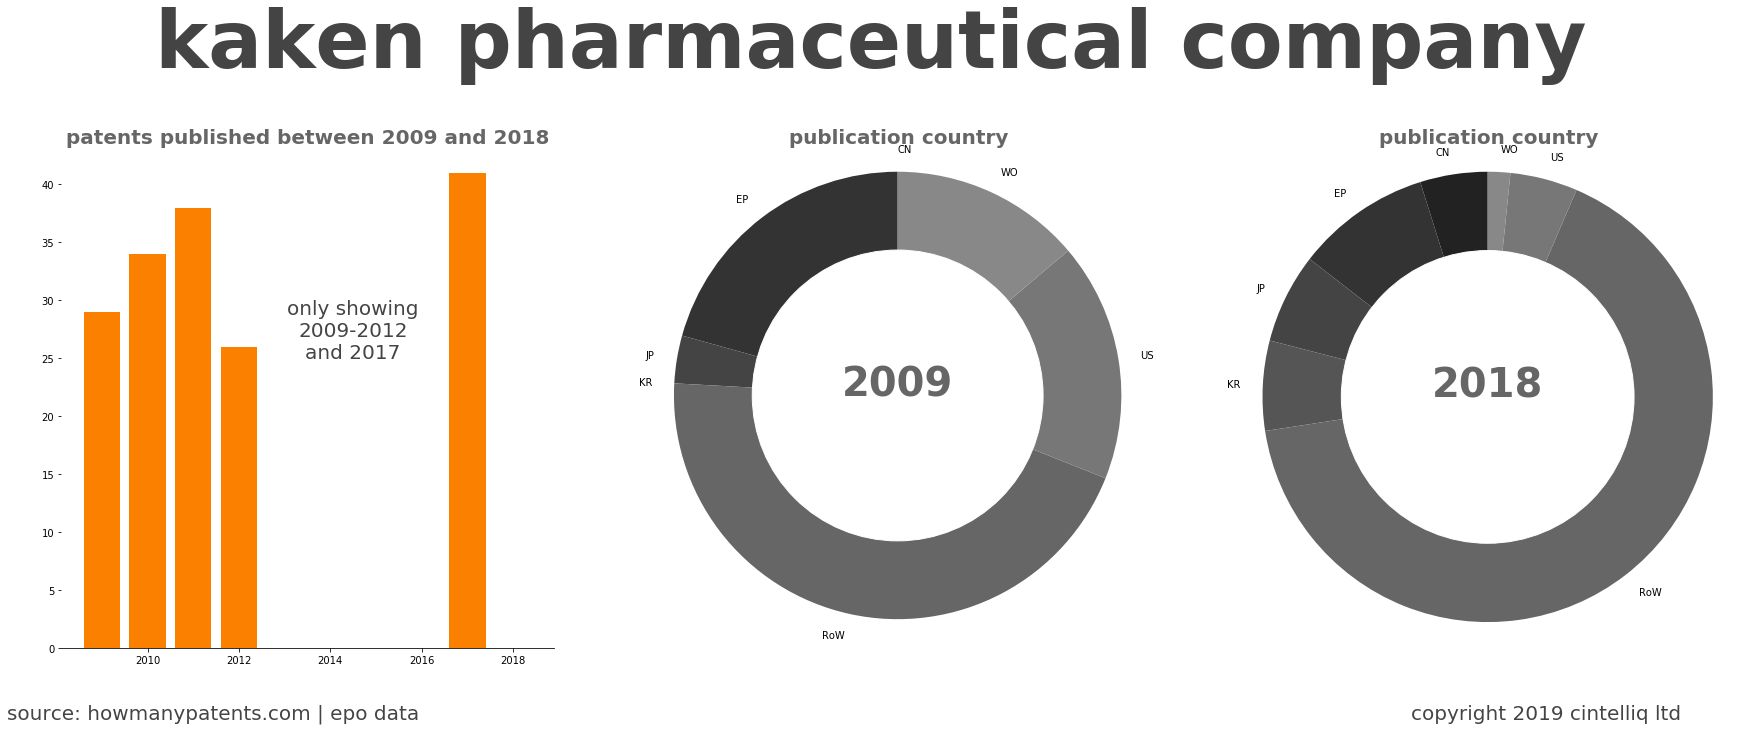 summary of patents for Kaken Pharmaceutical Company